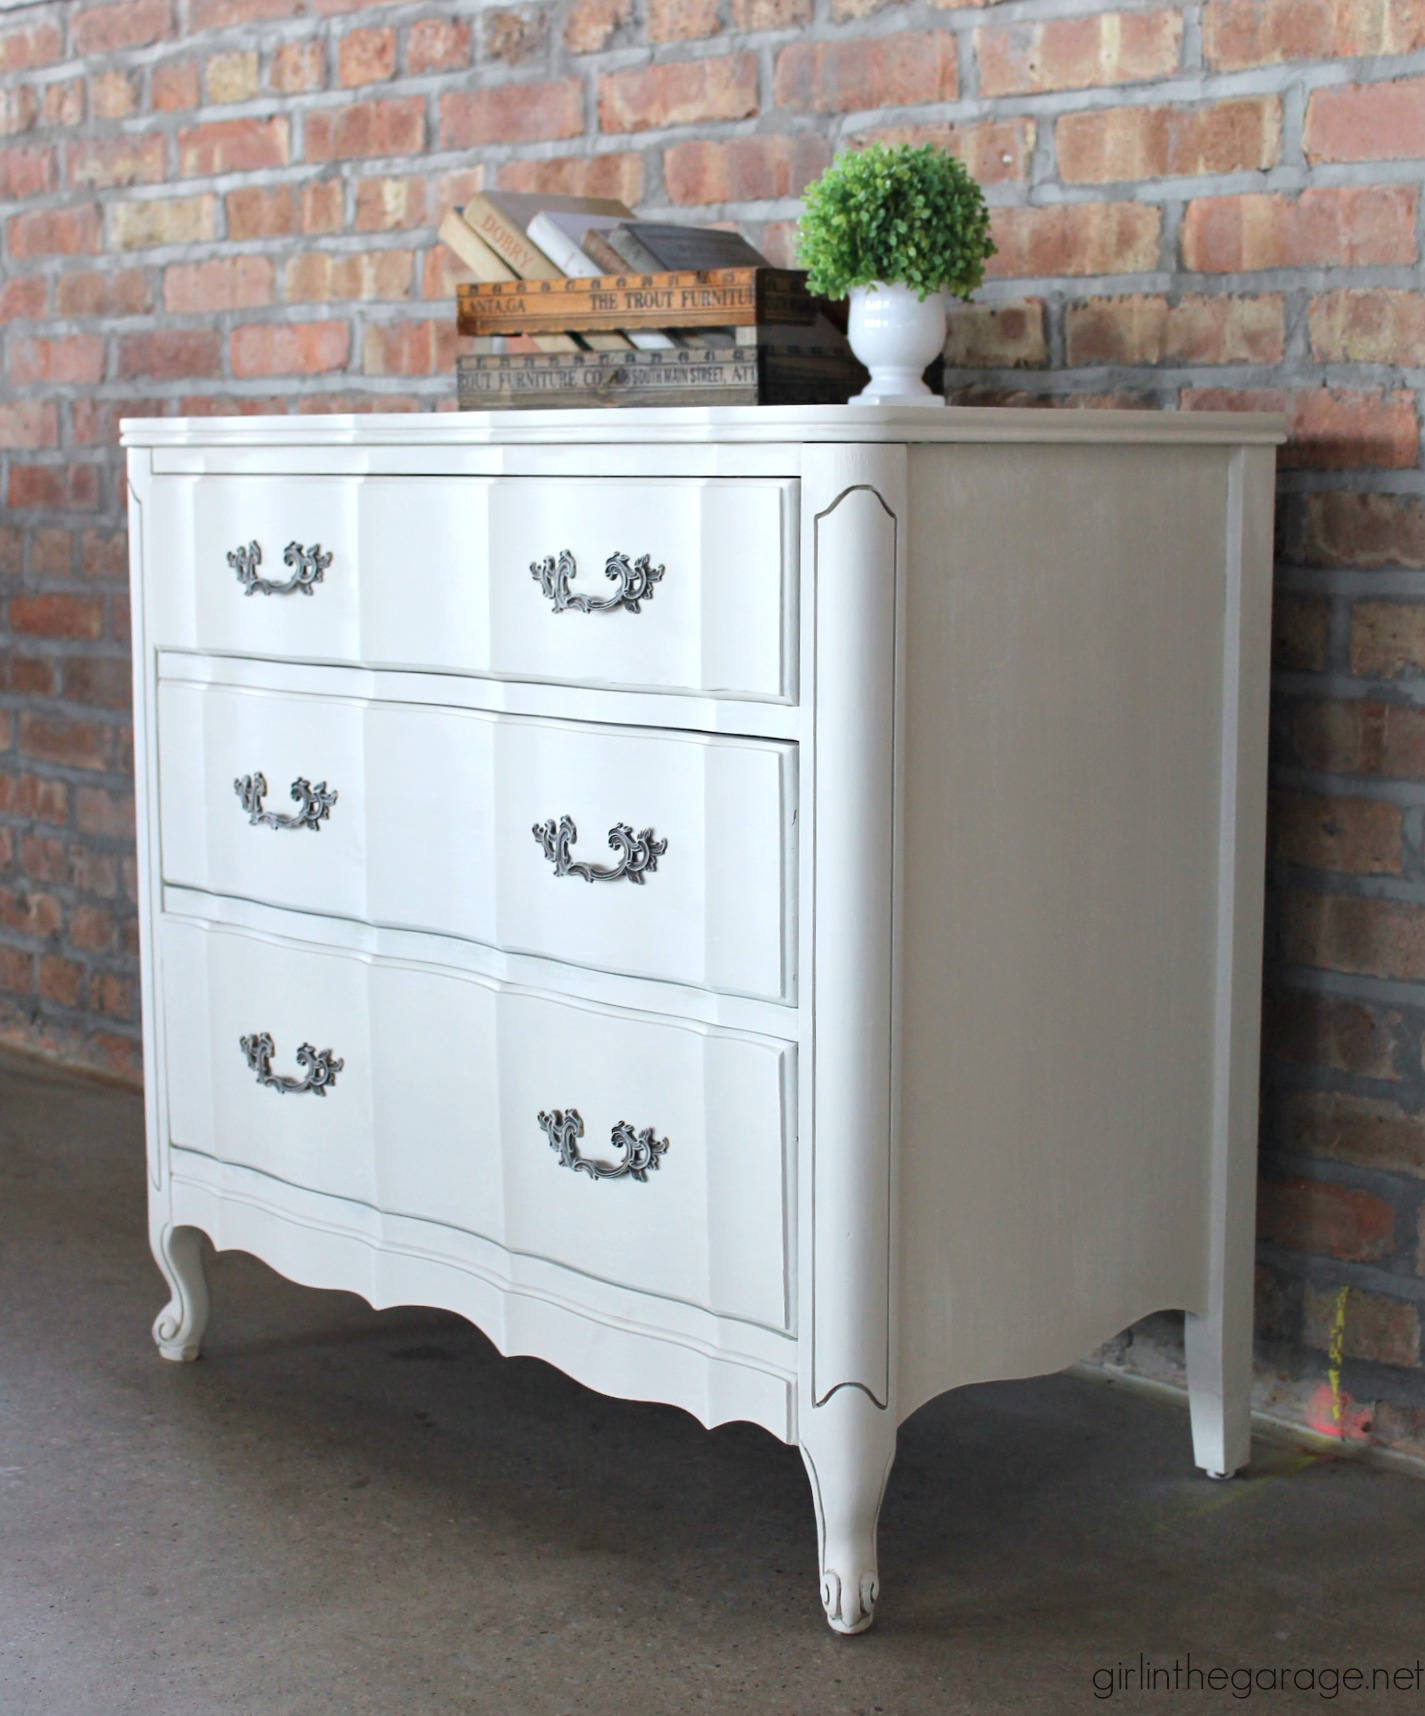 Vintage French Provincial Dresser Makeover Updated With Dry Brushed Paint Technique Using Fusion Mineral And